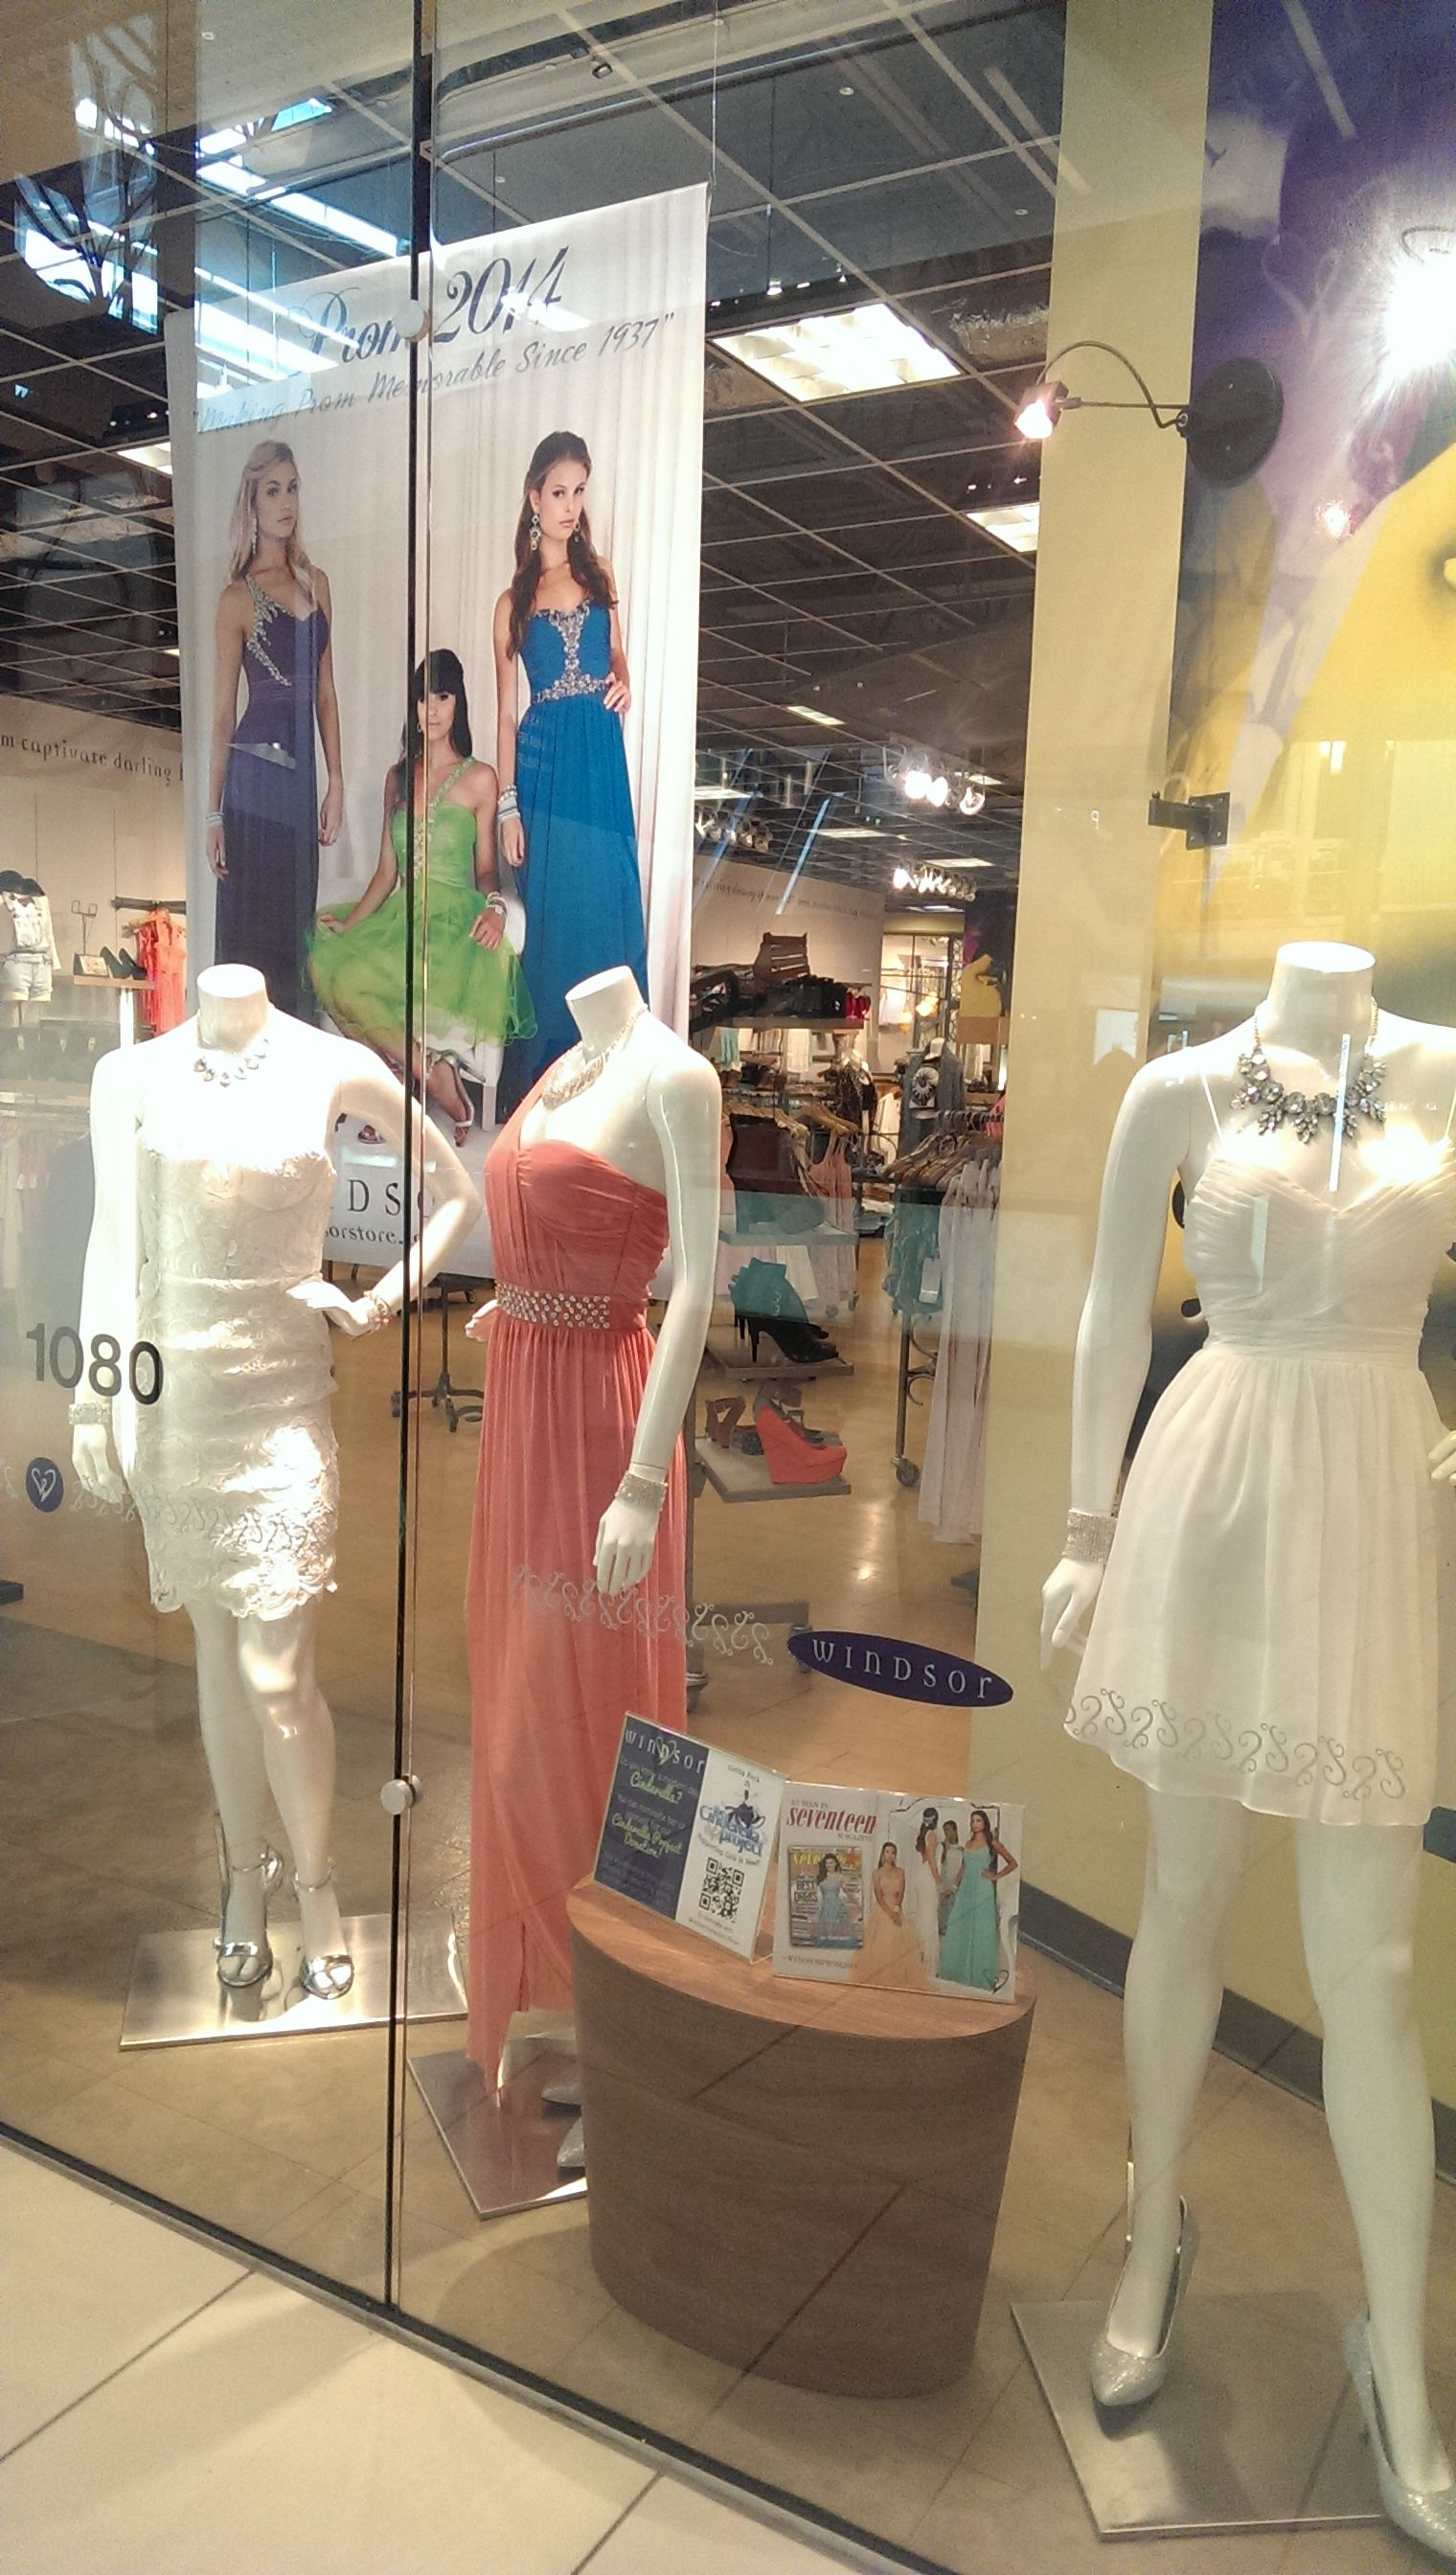 Windsor has prom dresses galore! Stop by Windsor on the lower level ...